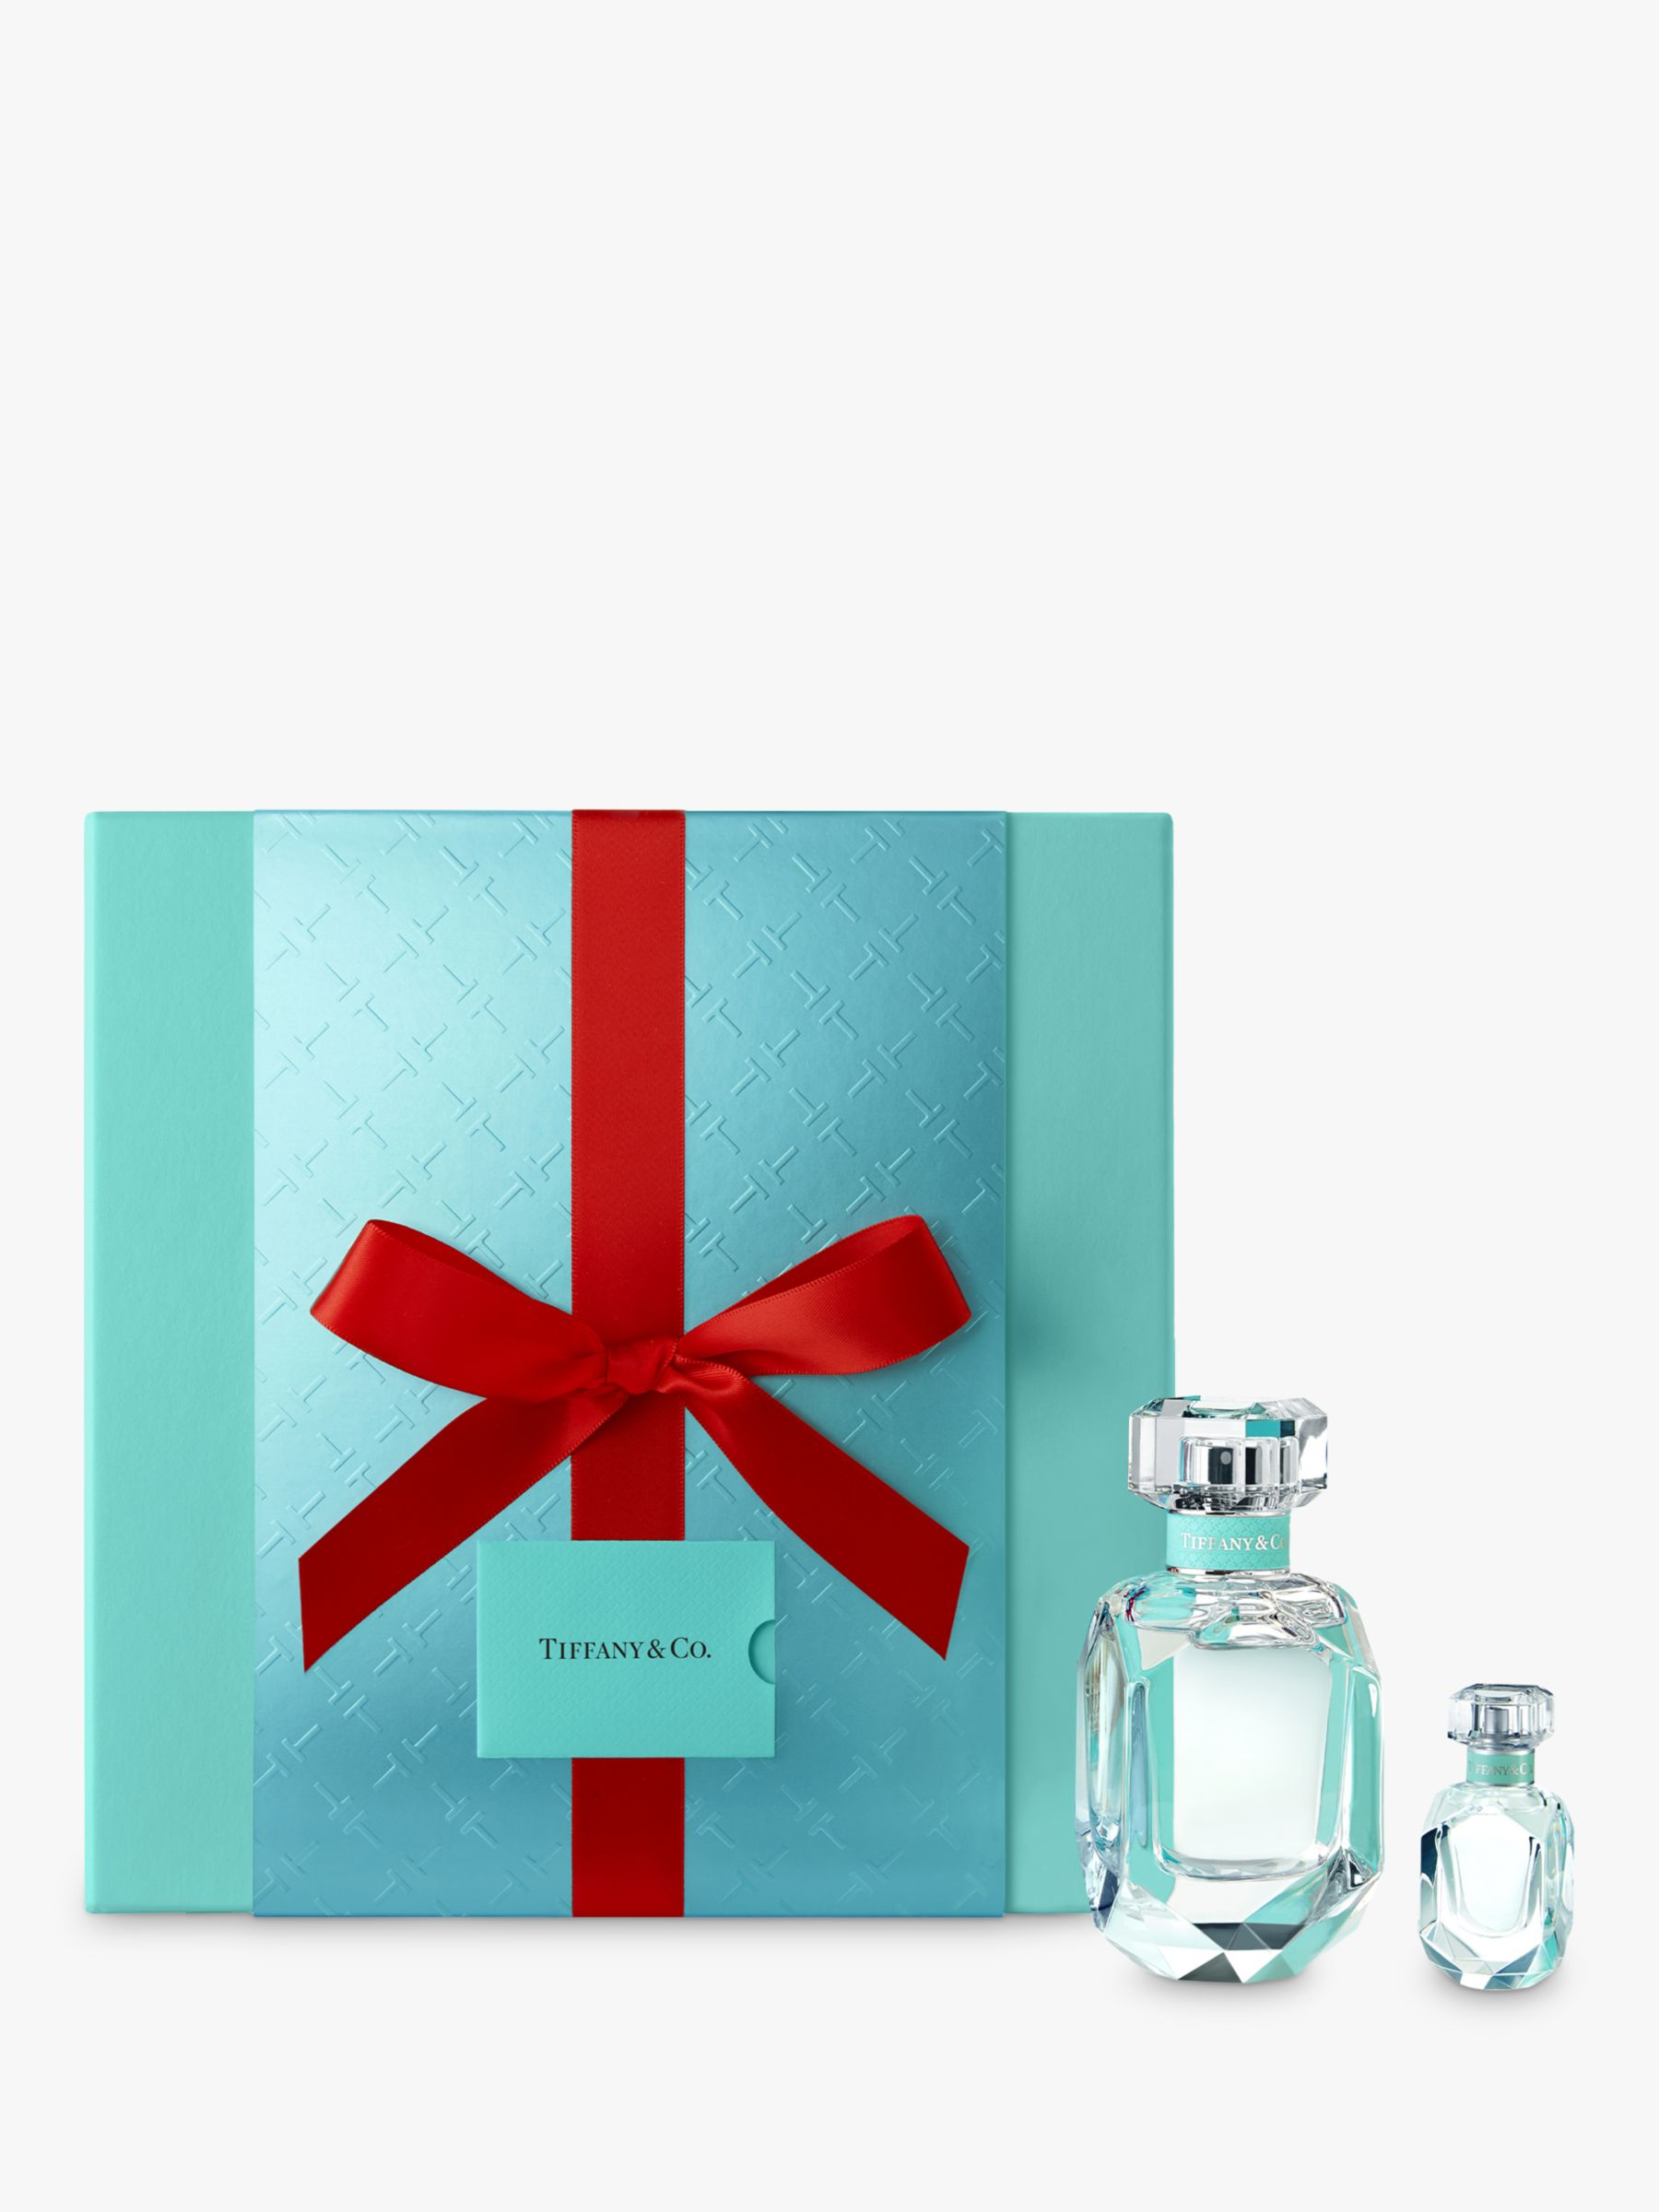 Tiffany Co Eau De Parfum 50ml Fragrance Gift Set At John Lewis Partners